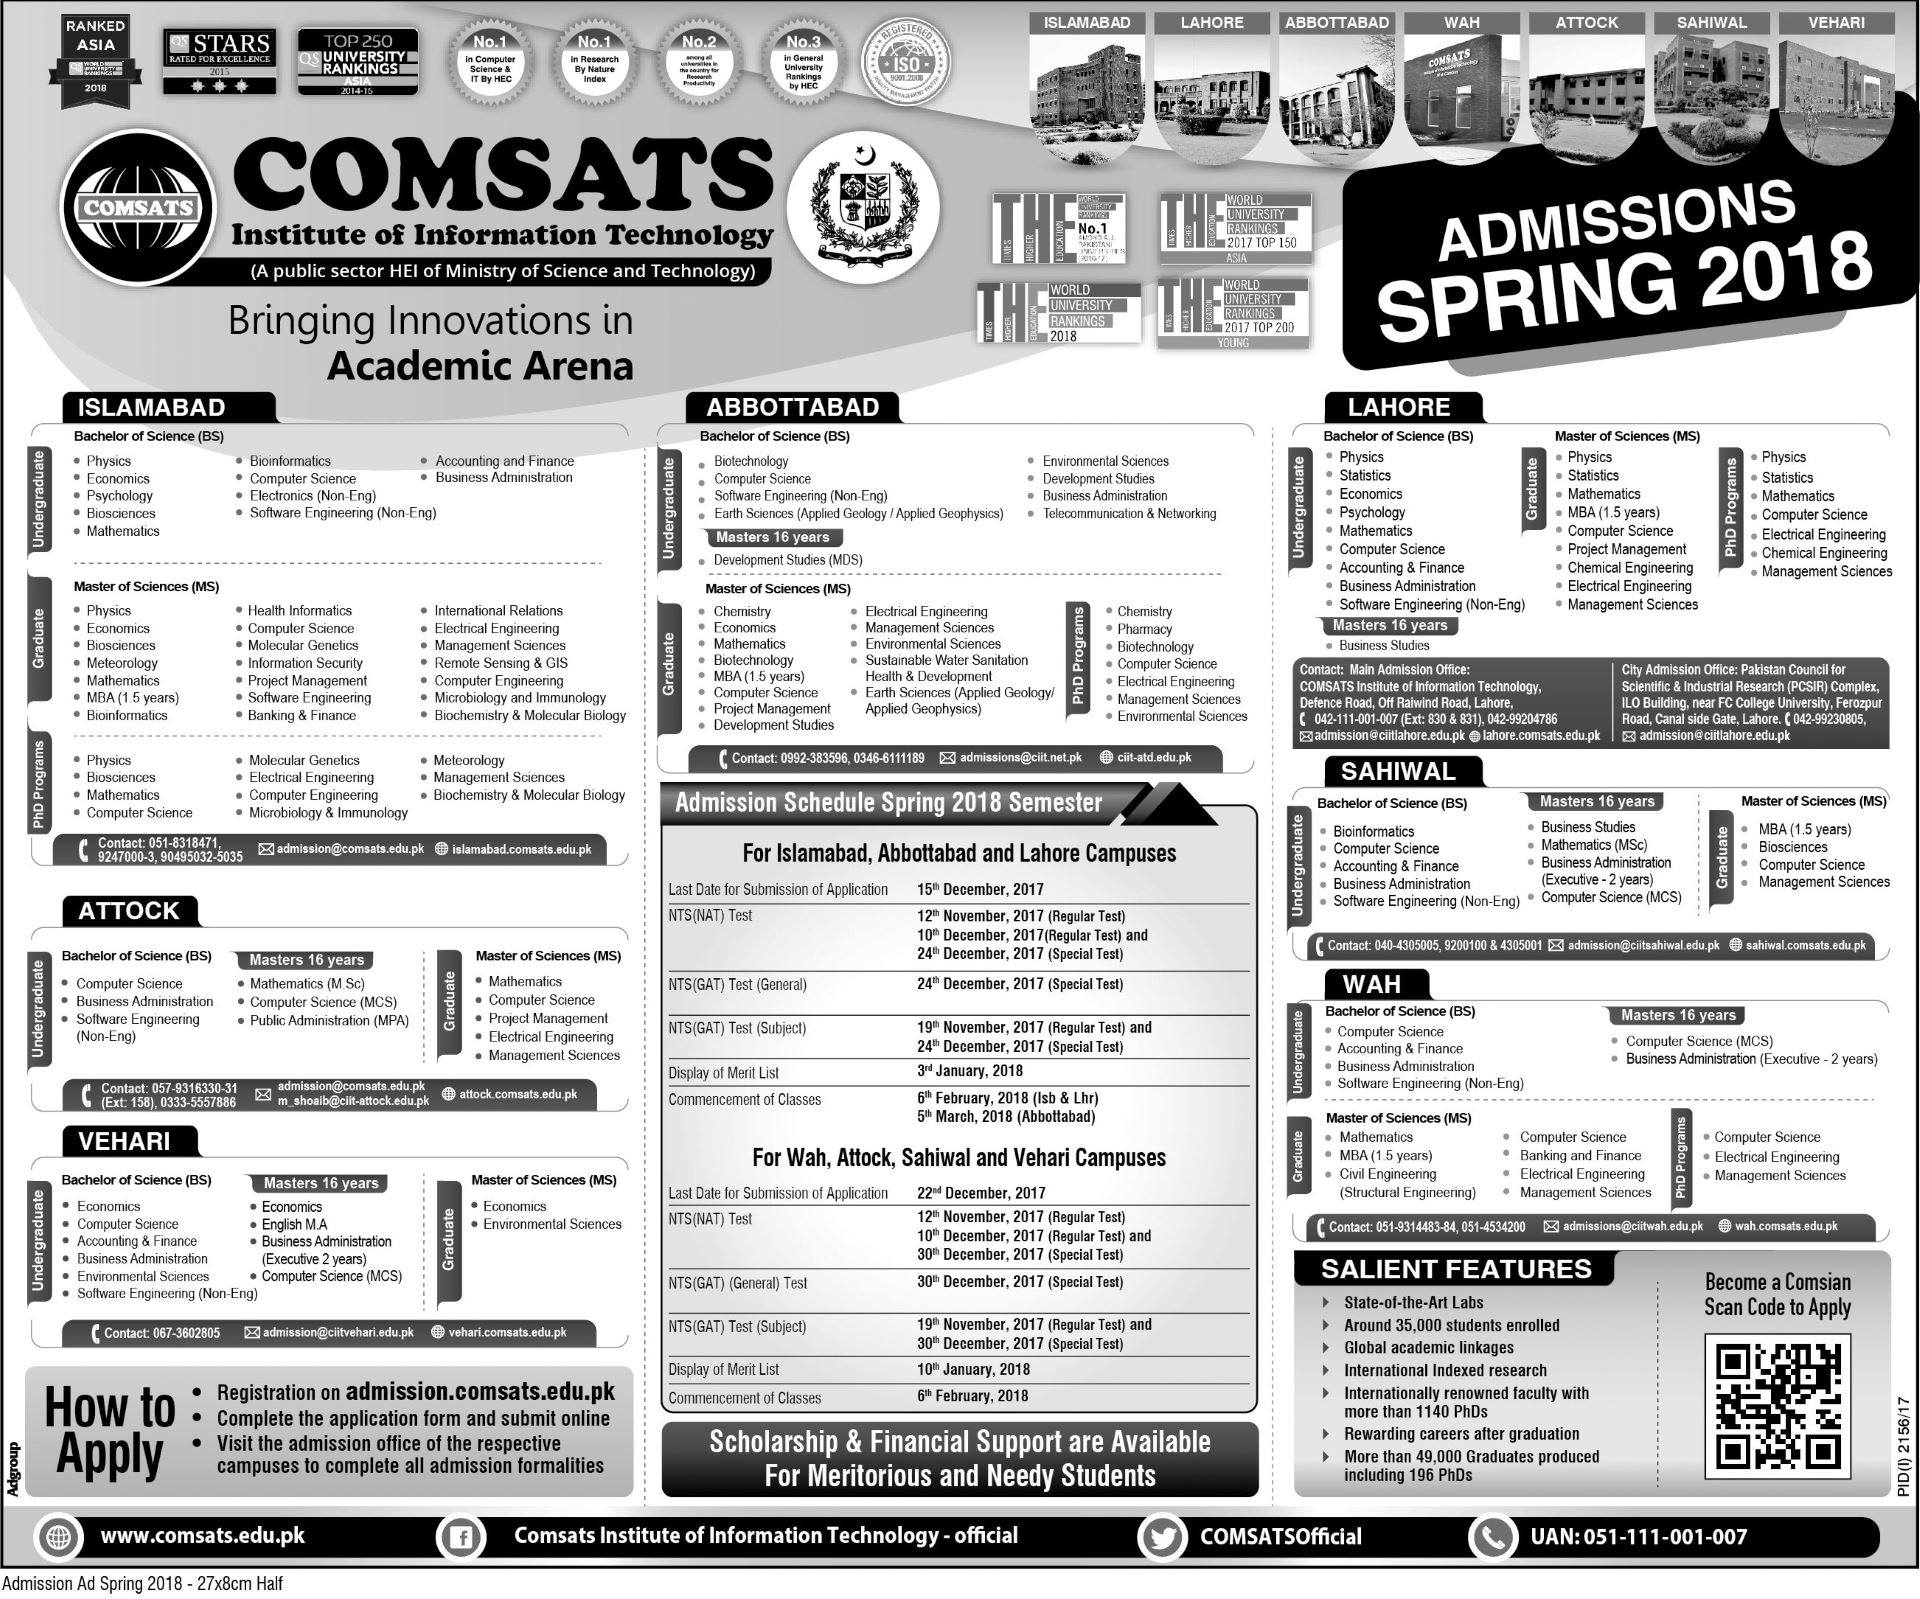 COMSATS Admissions Spring 2018 - STEP